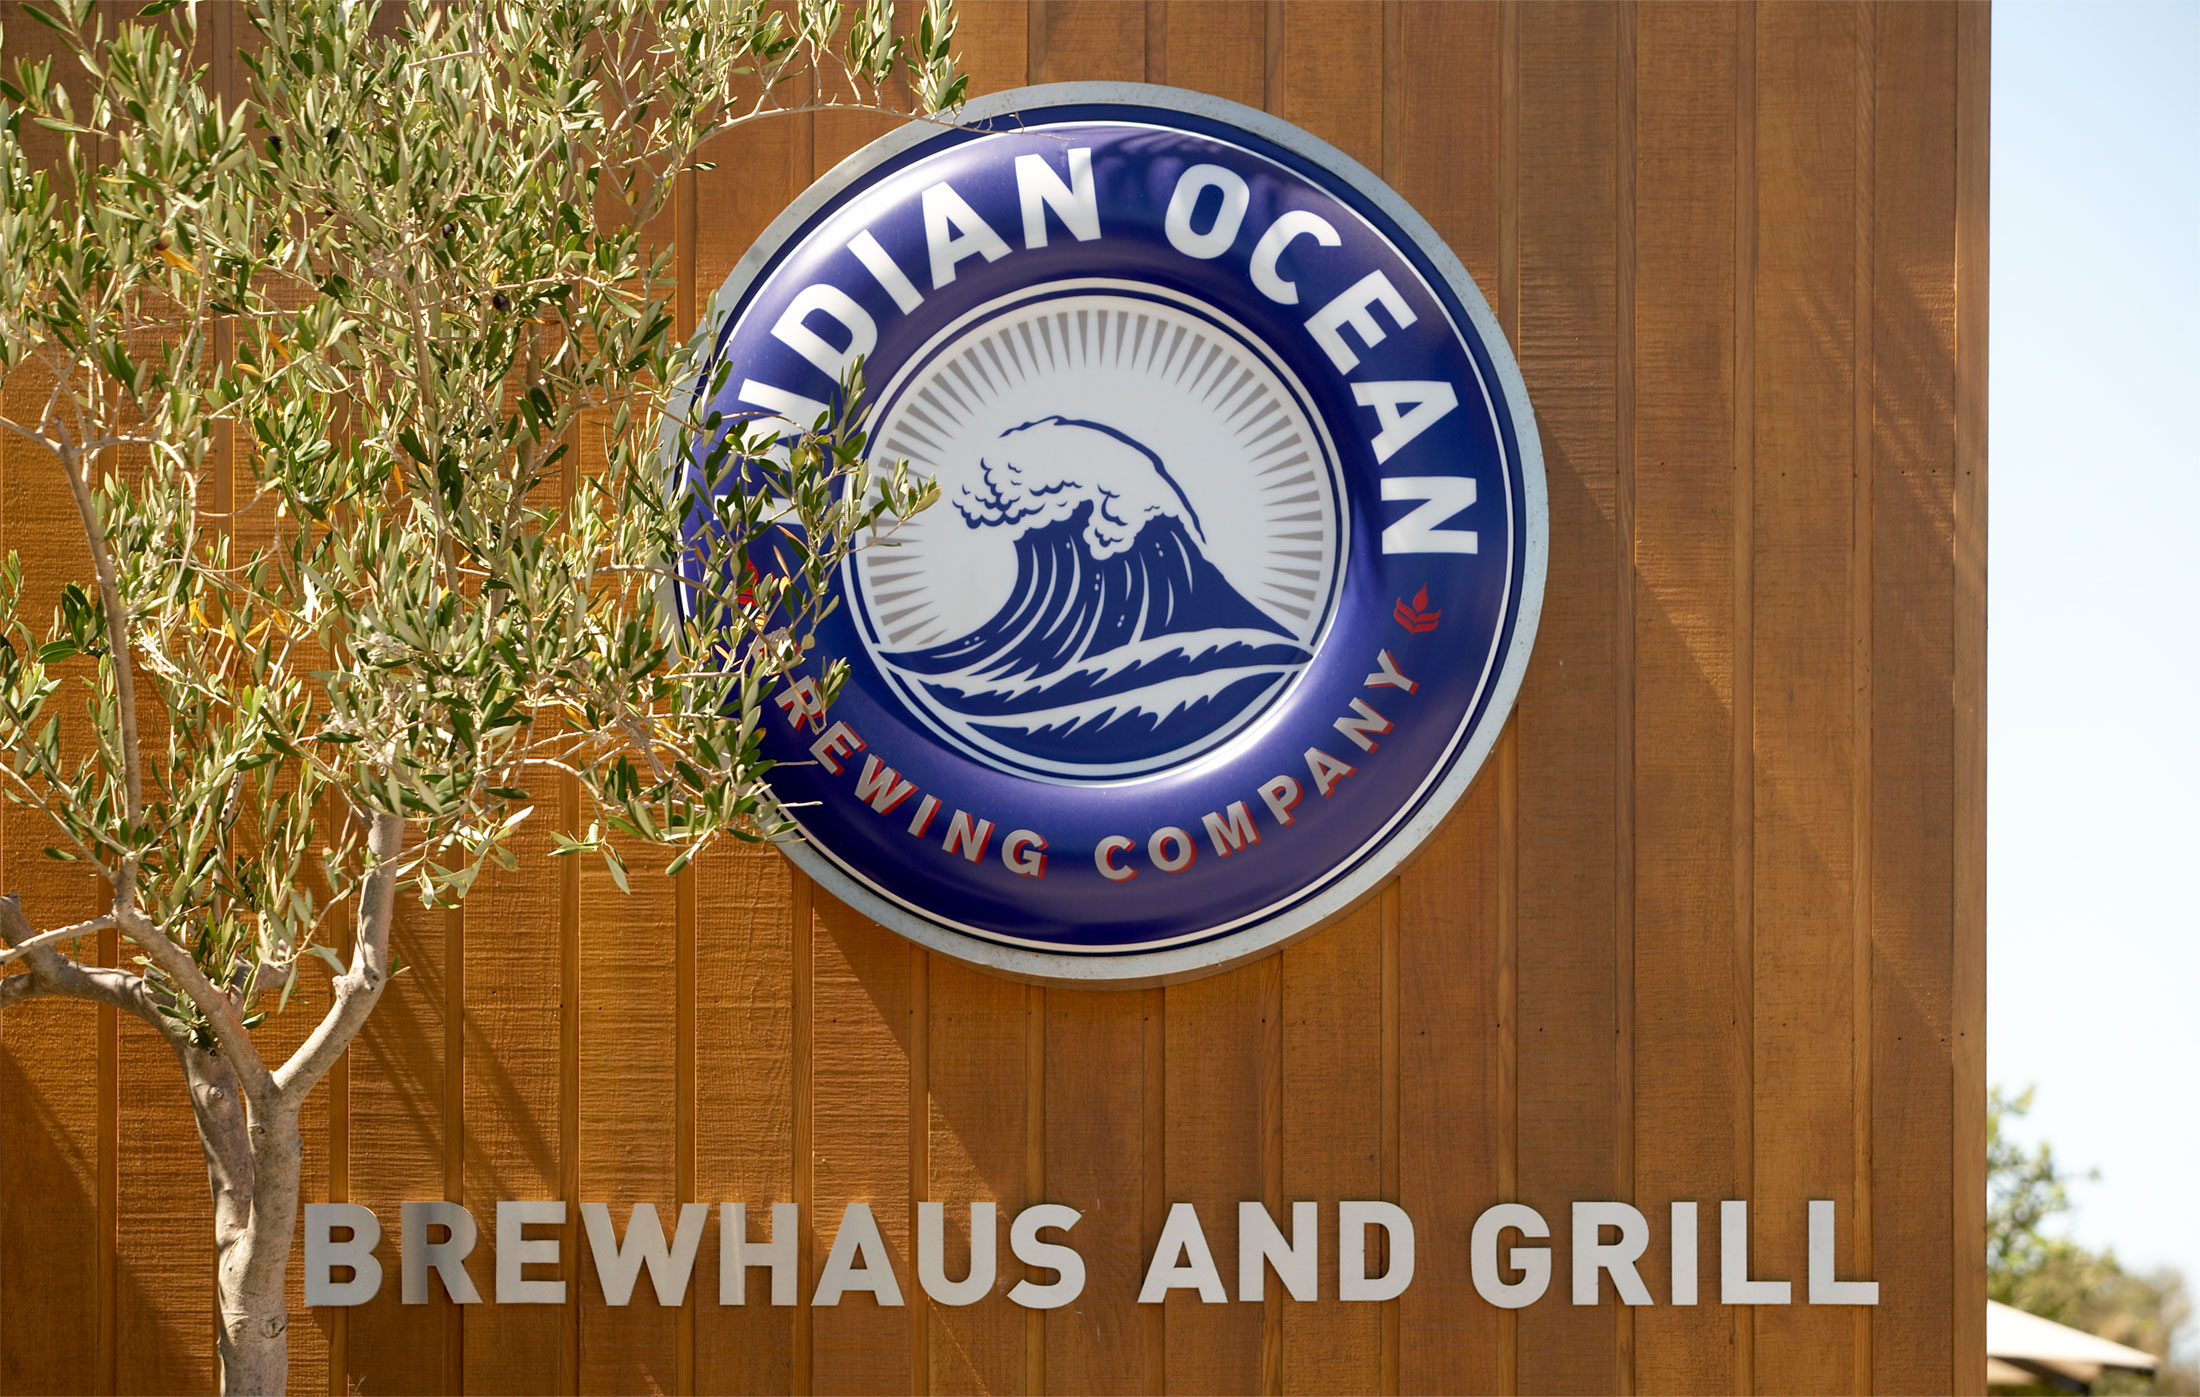 Indian Ocean Brewing Company – Brand Signage